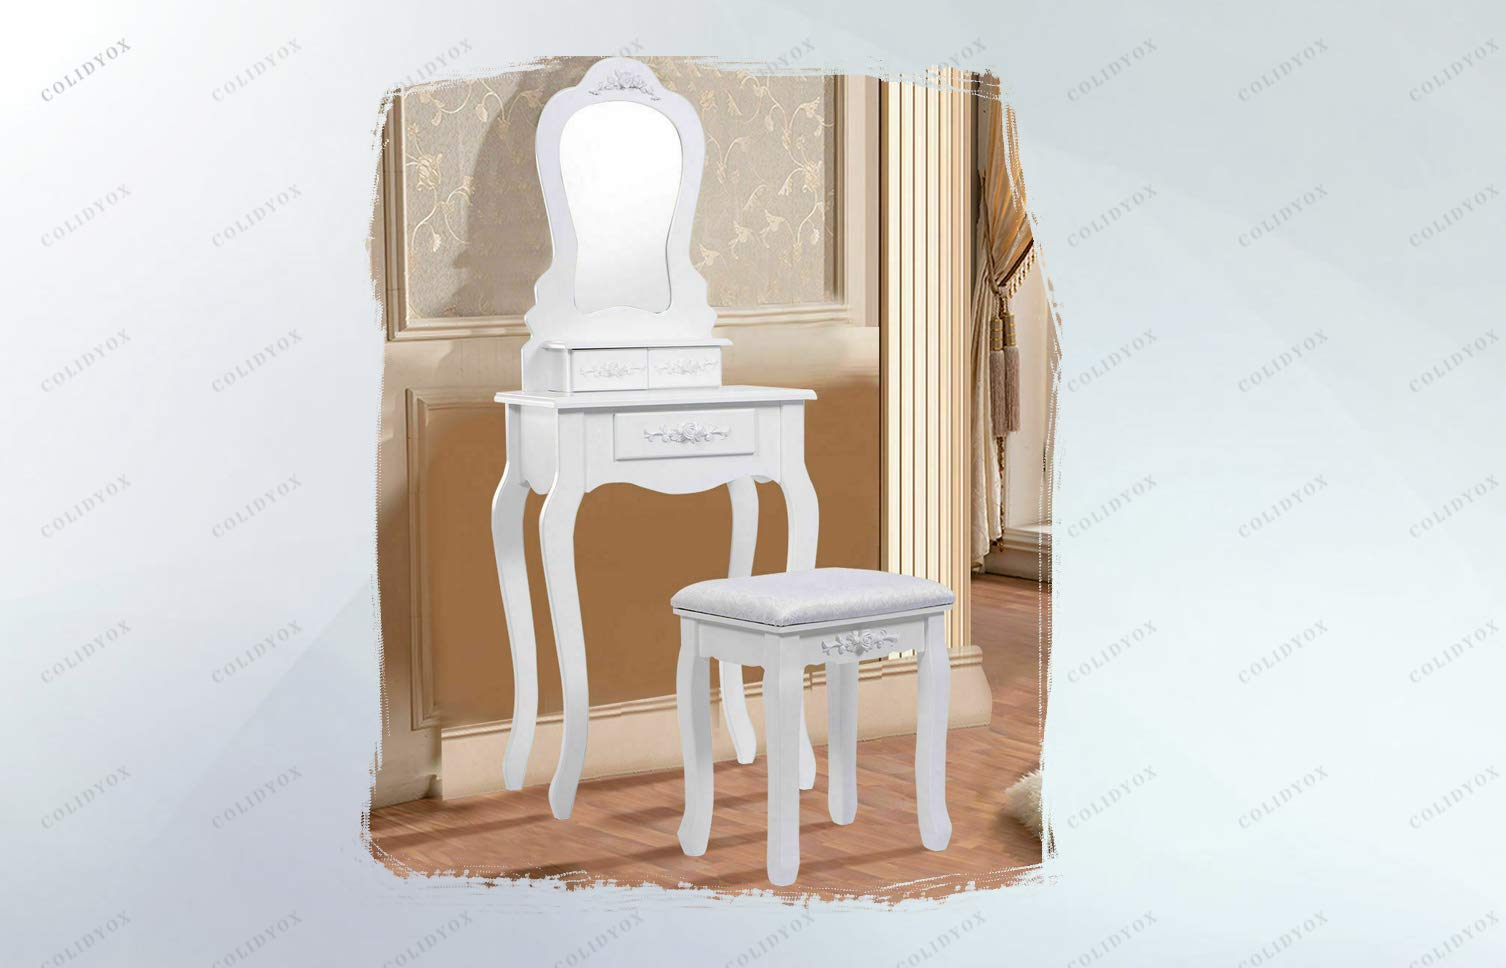 COLIDYOX___Glamorous Dressing Table,Vanity Table Set Comes with Mirror, Stool and 3 Storage Drawers,Storage Capacity is Great for Storing Jewelry,Tabletop Provides Space for Cosmetics